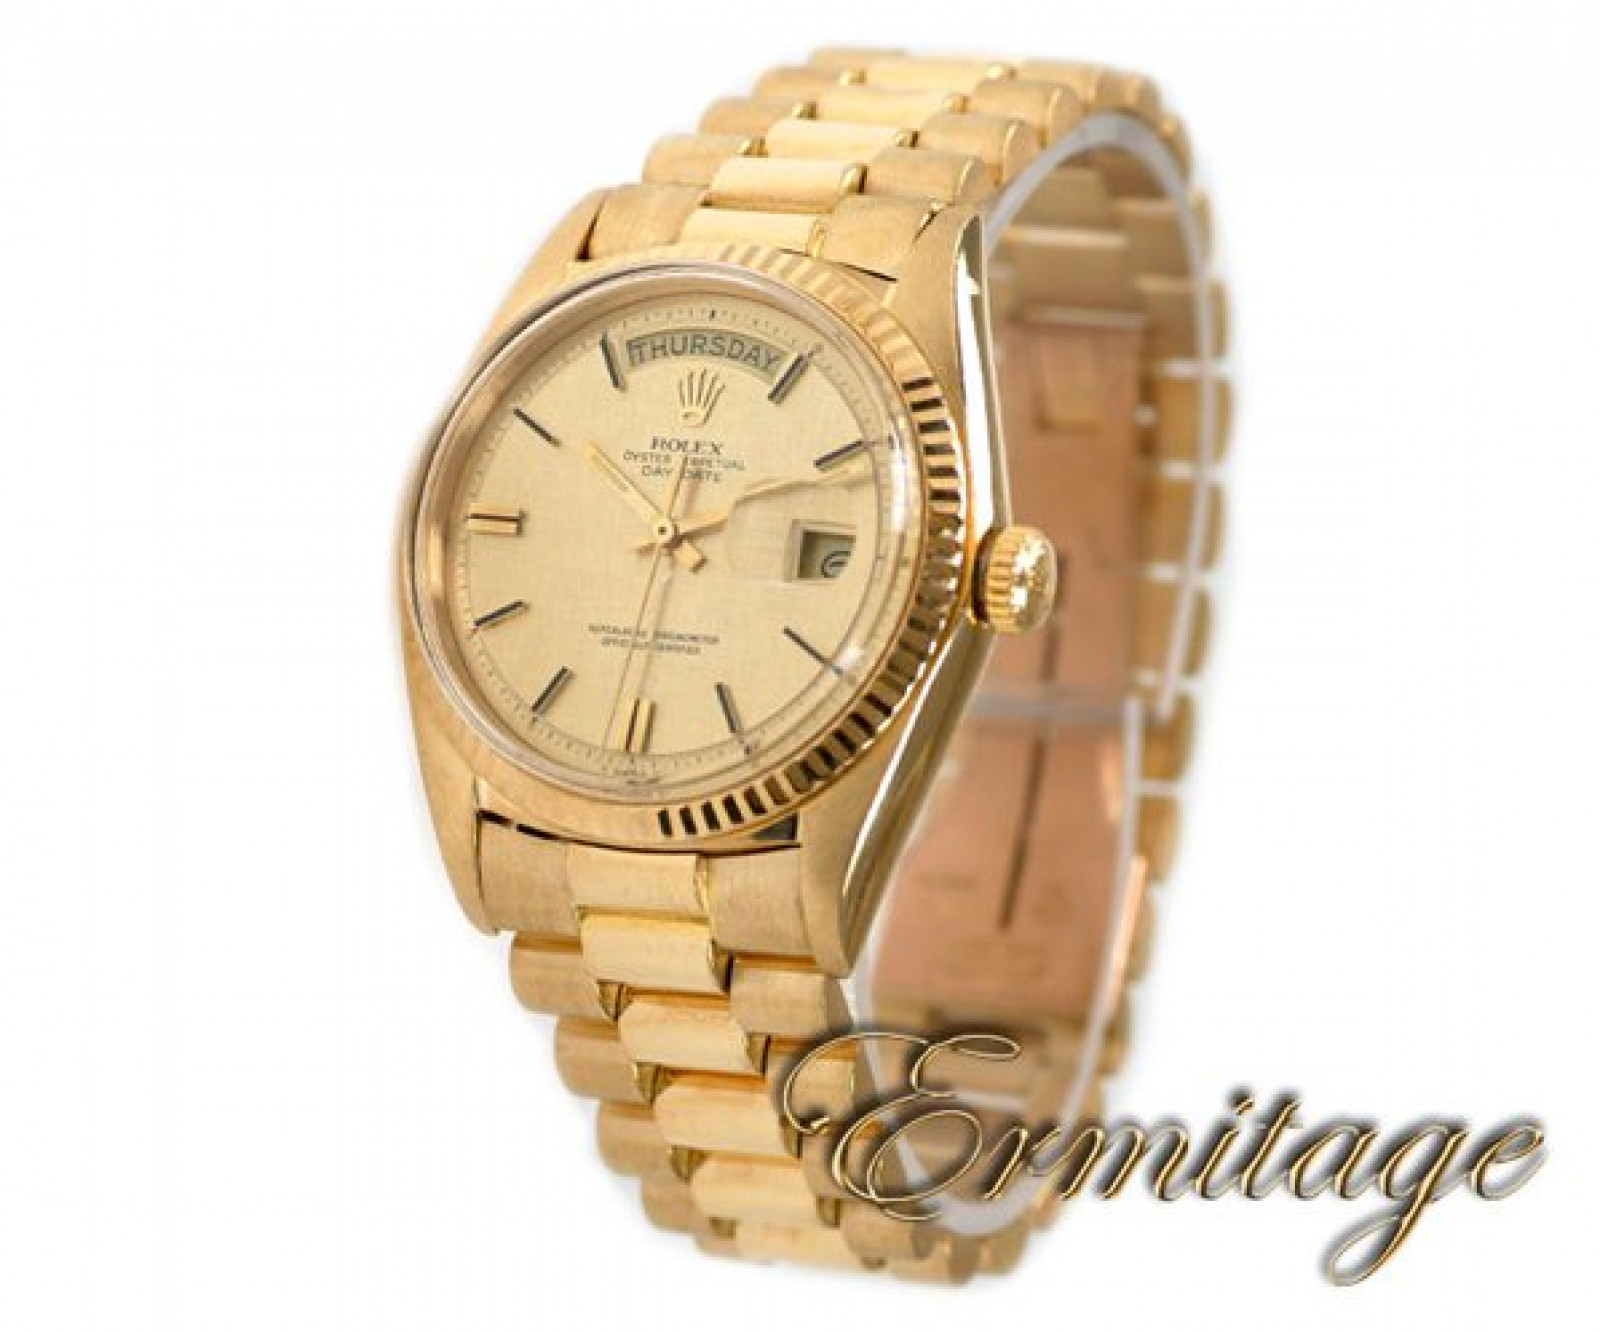 Vintage Rolex Day-Date 1803 Gold Year 1970 with Champagne Dial 1970